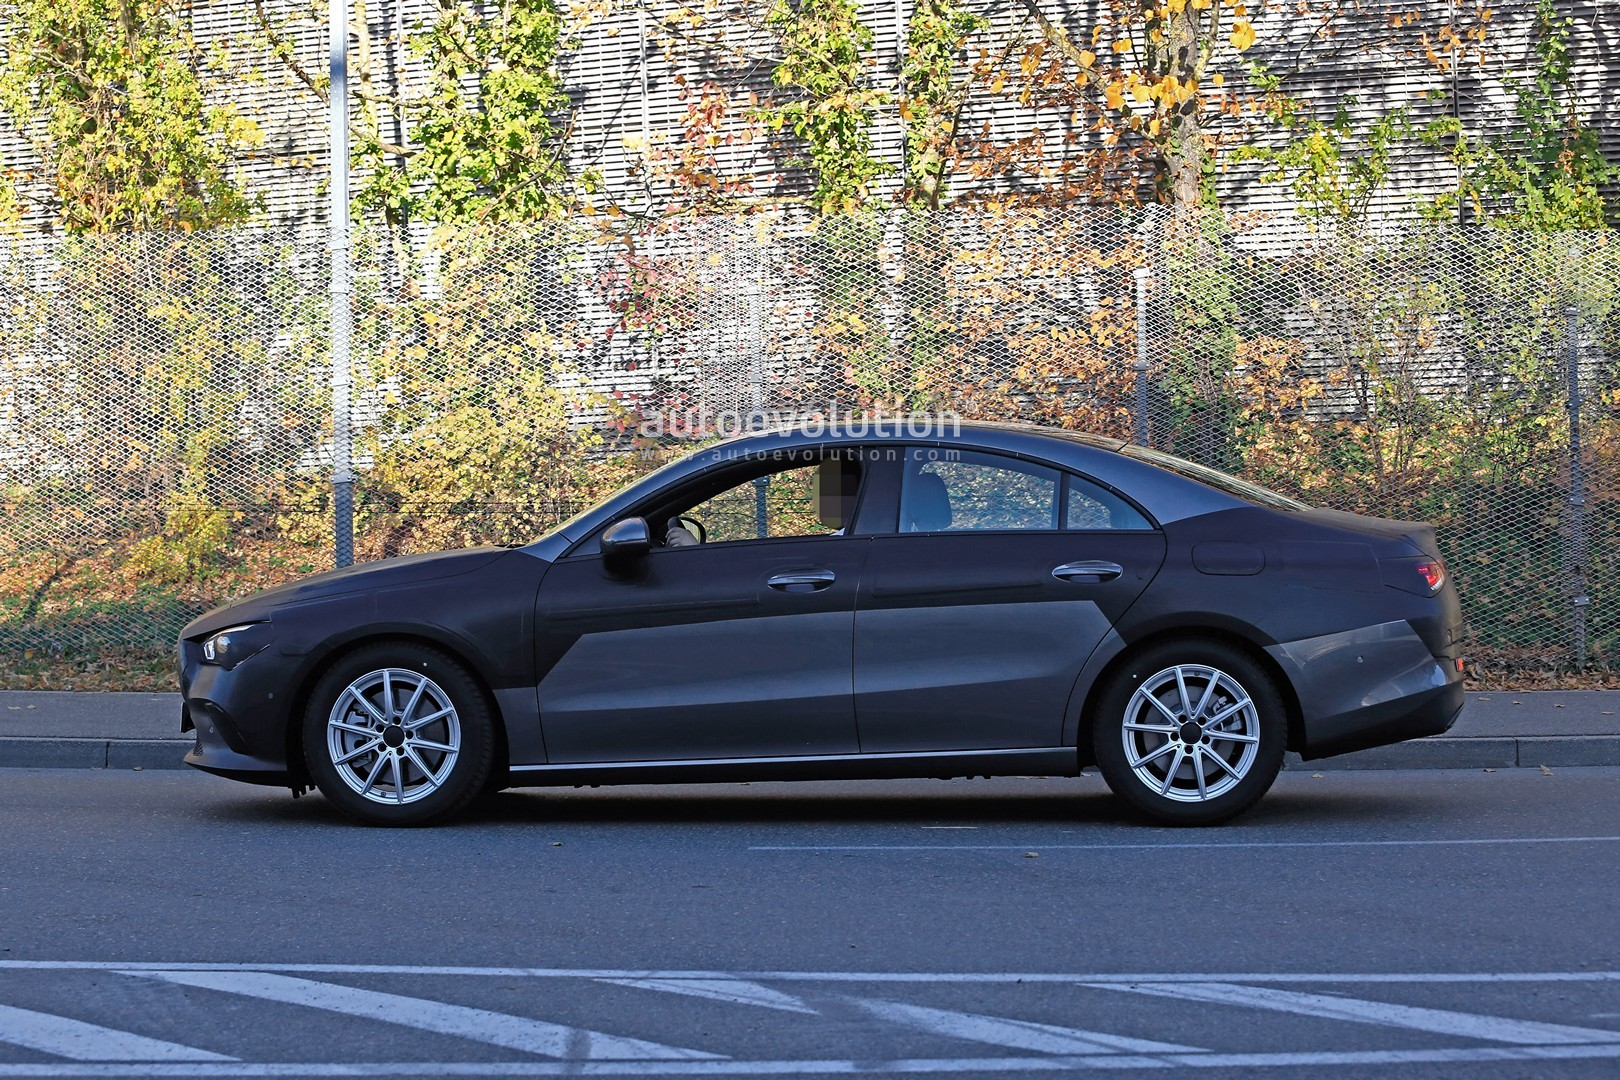 2019 - [Mercedes-Benz] CLA II - Page 4 New-mercedes-benz-cla-class-nearly-revealed-by-latest-spyshots_6